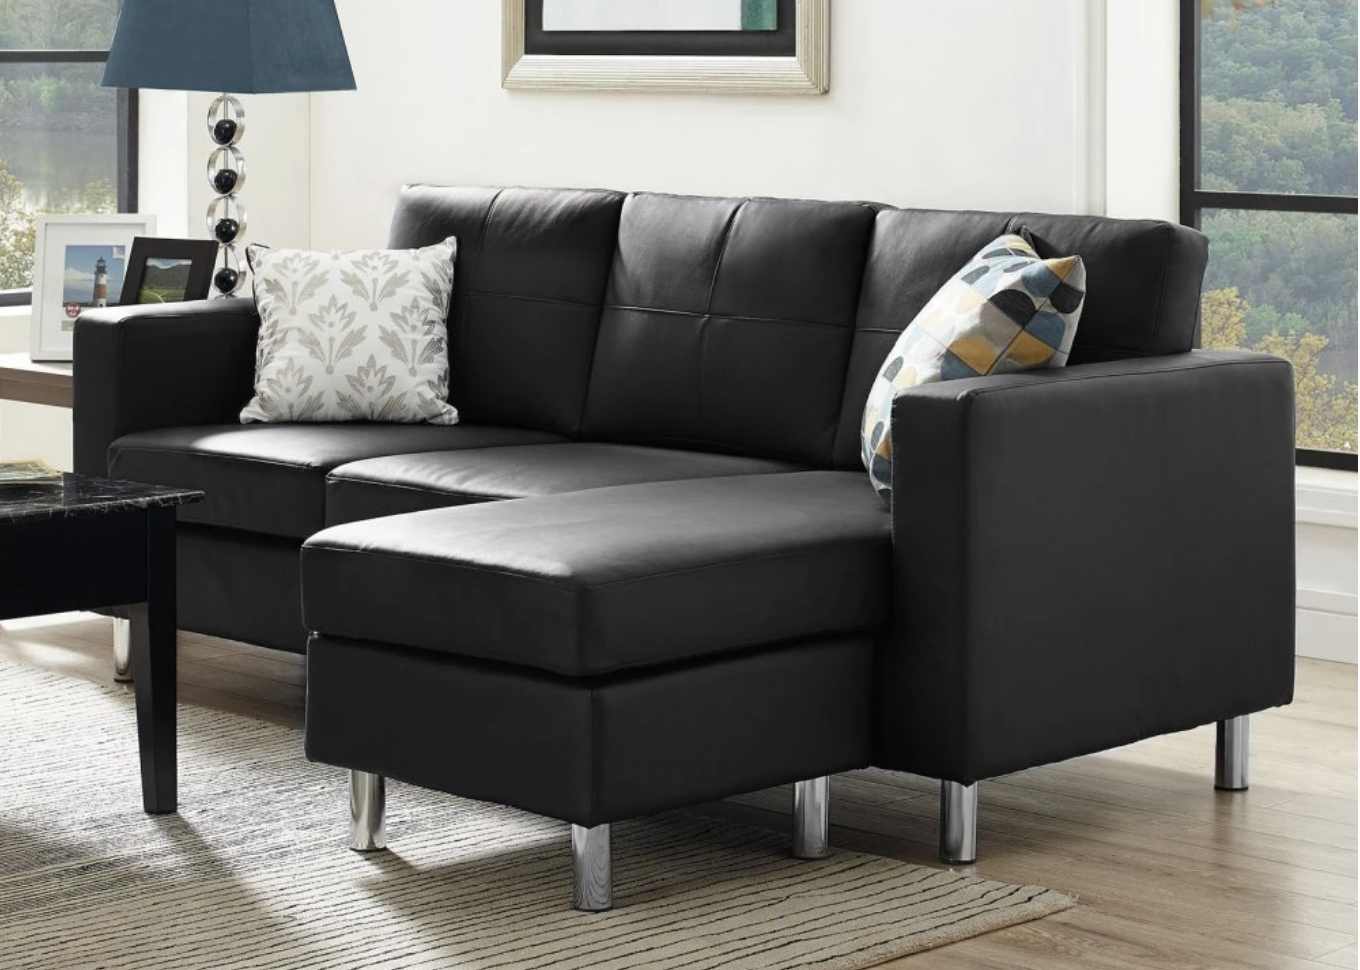 Current Sectional Sofas For Condos With Regard To 75 Modern Sectional Sofas For Small Spaces (2018) (Gallery 15 of 20)